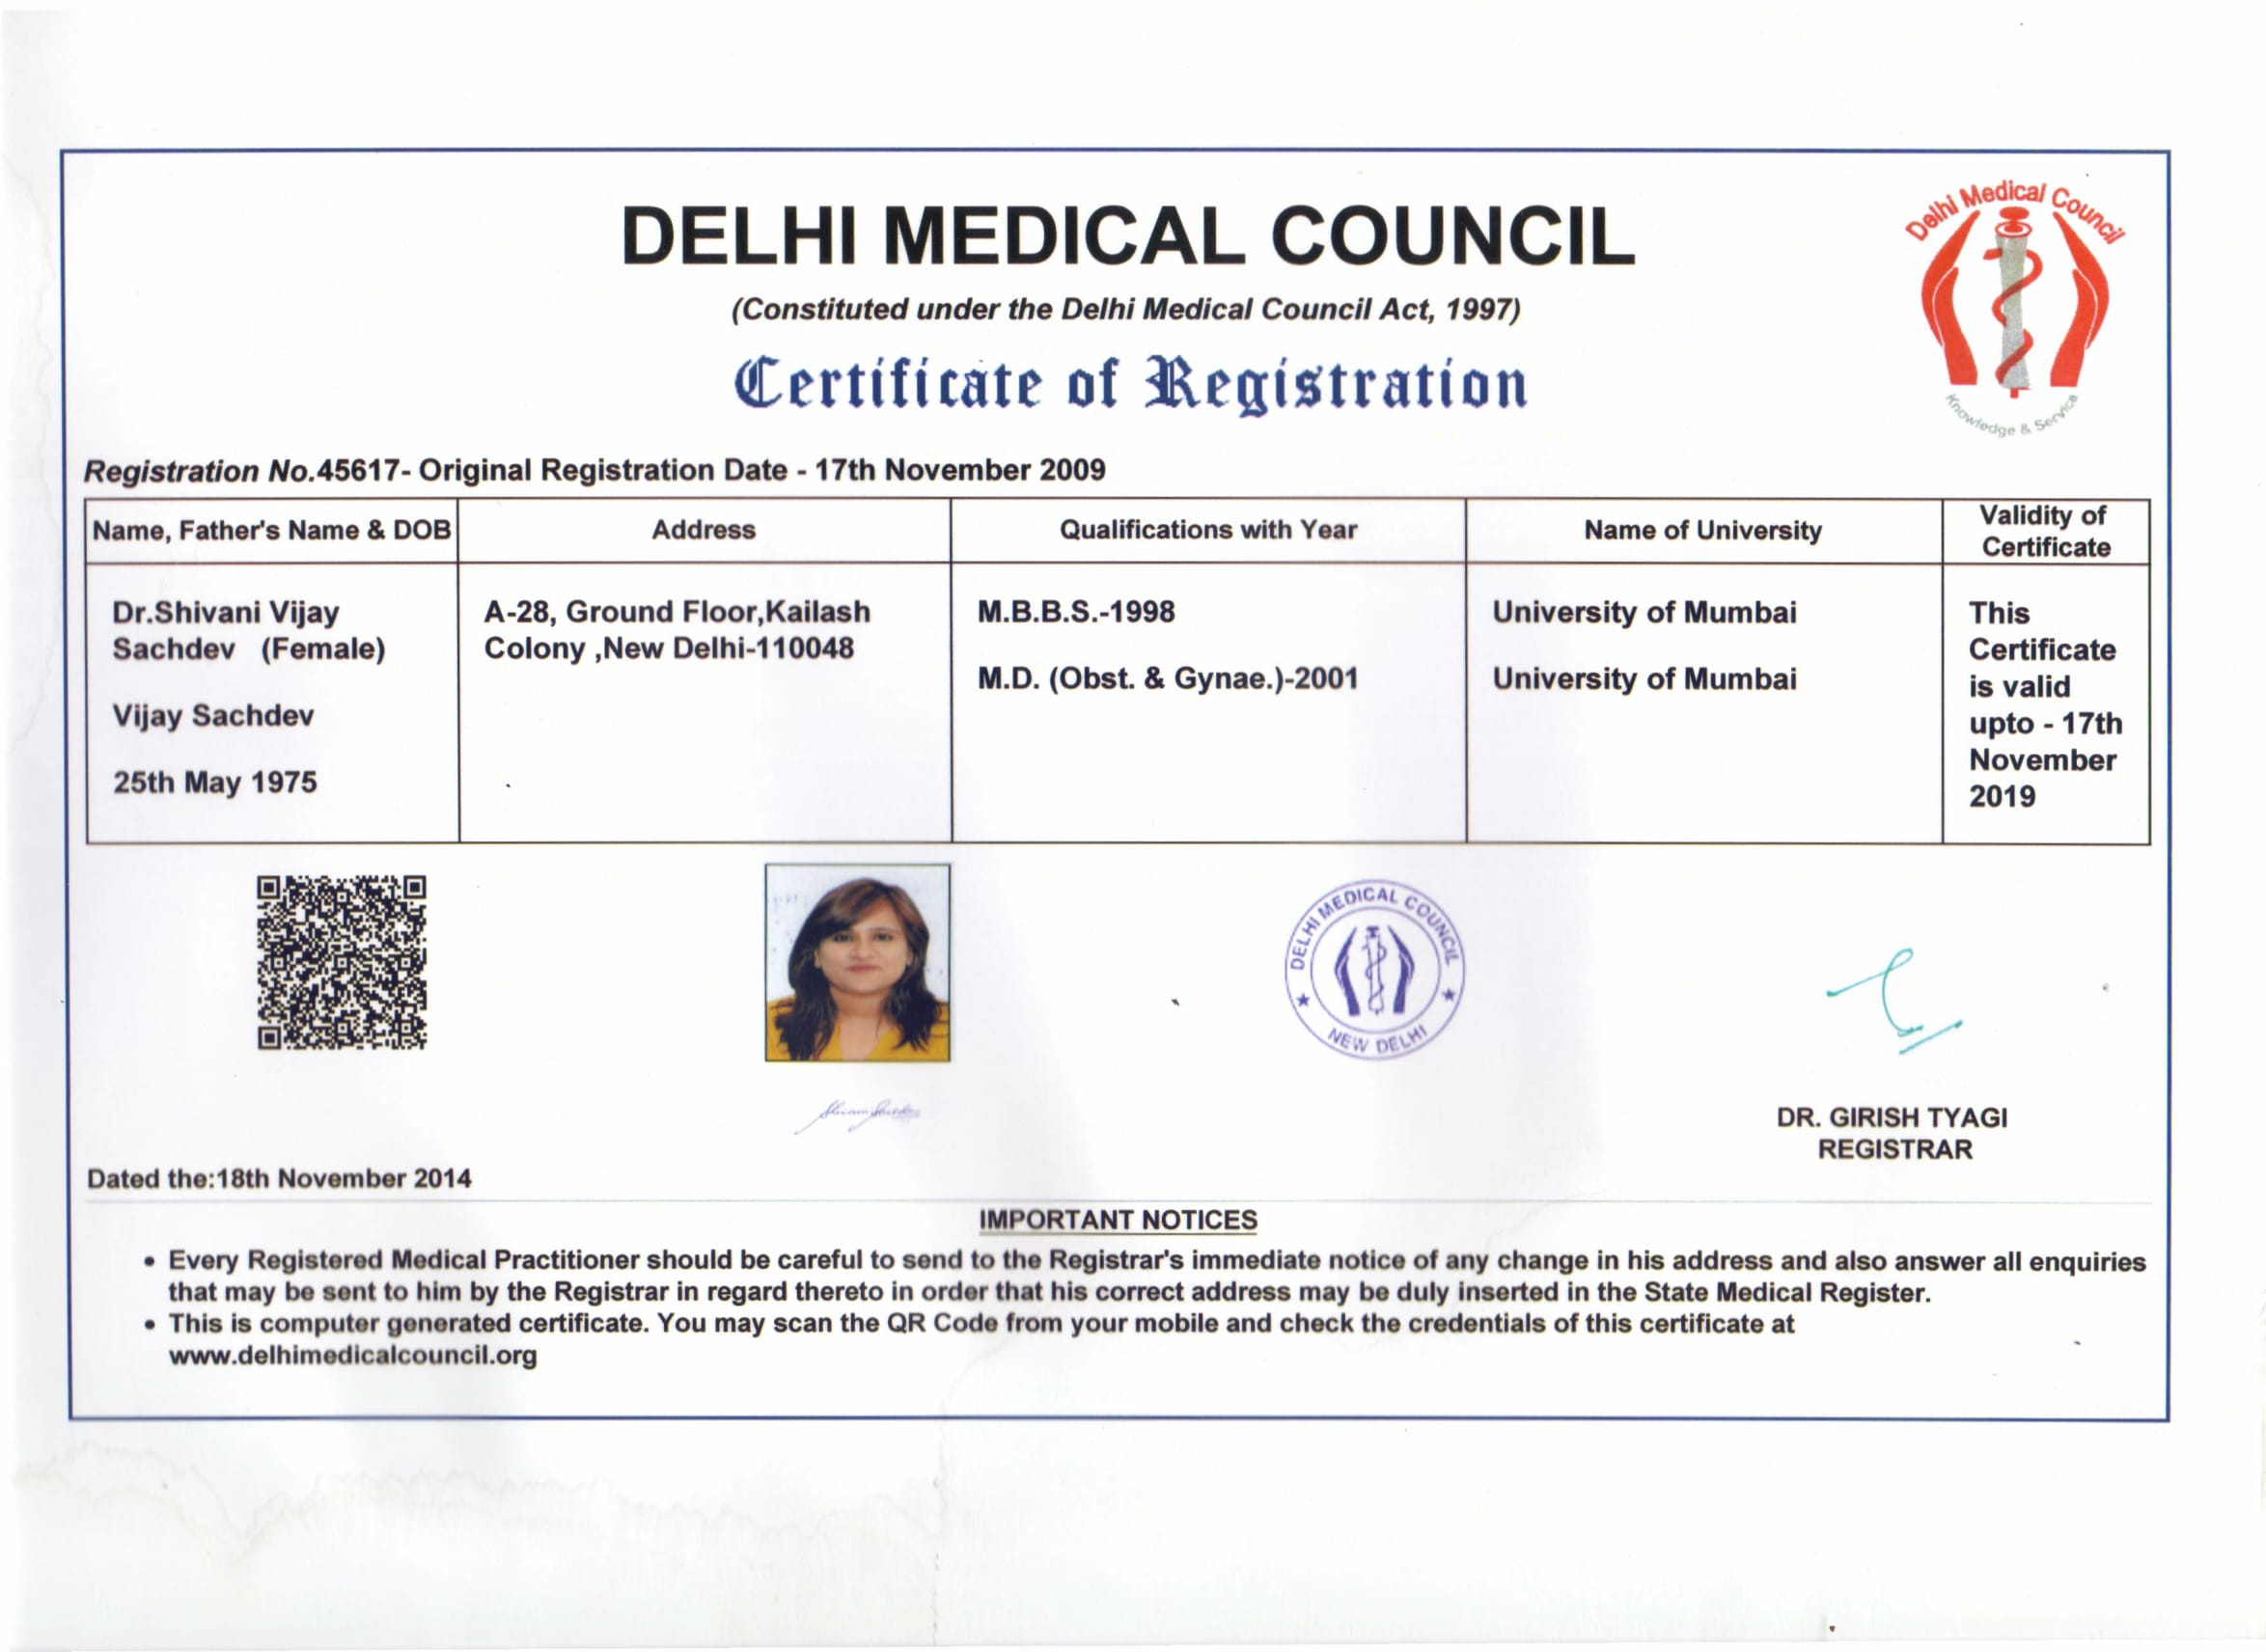 Dr Shivani Sachdev Gour certificate of Delhi Medical Council